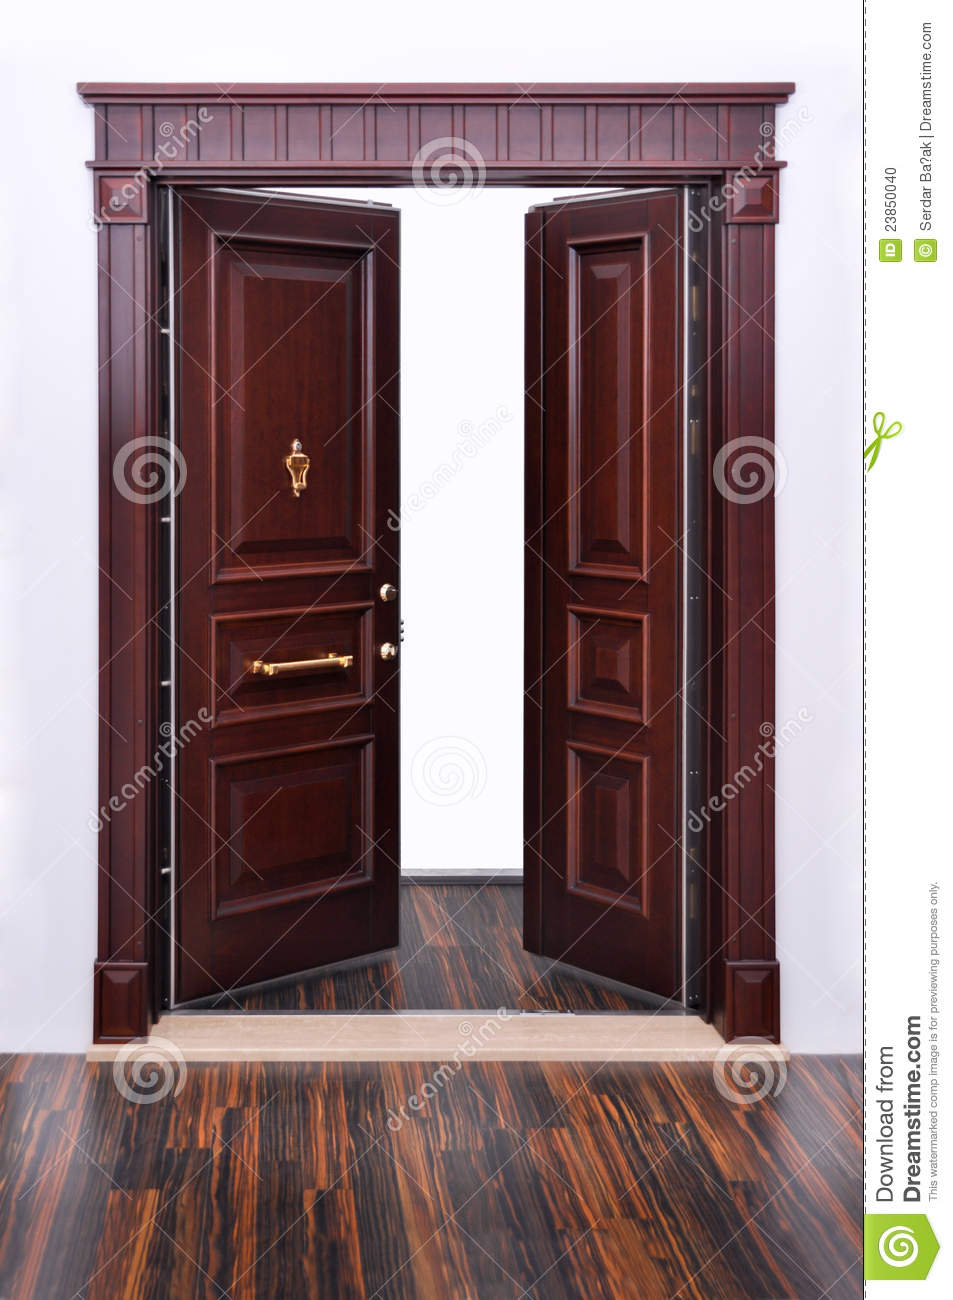 Modern Front Door Stock Photo - Image: 23850040